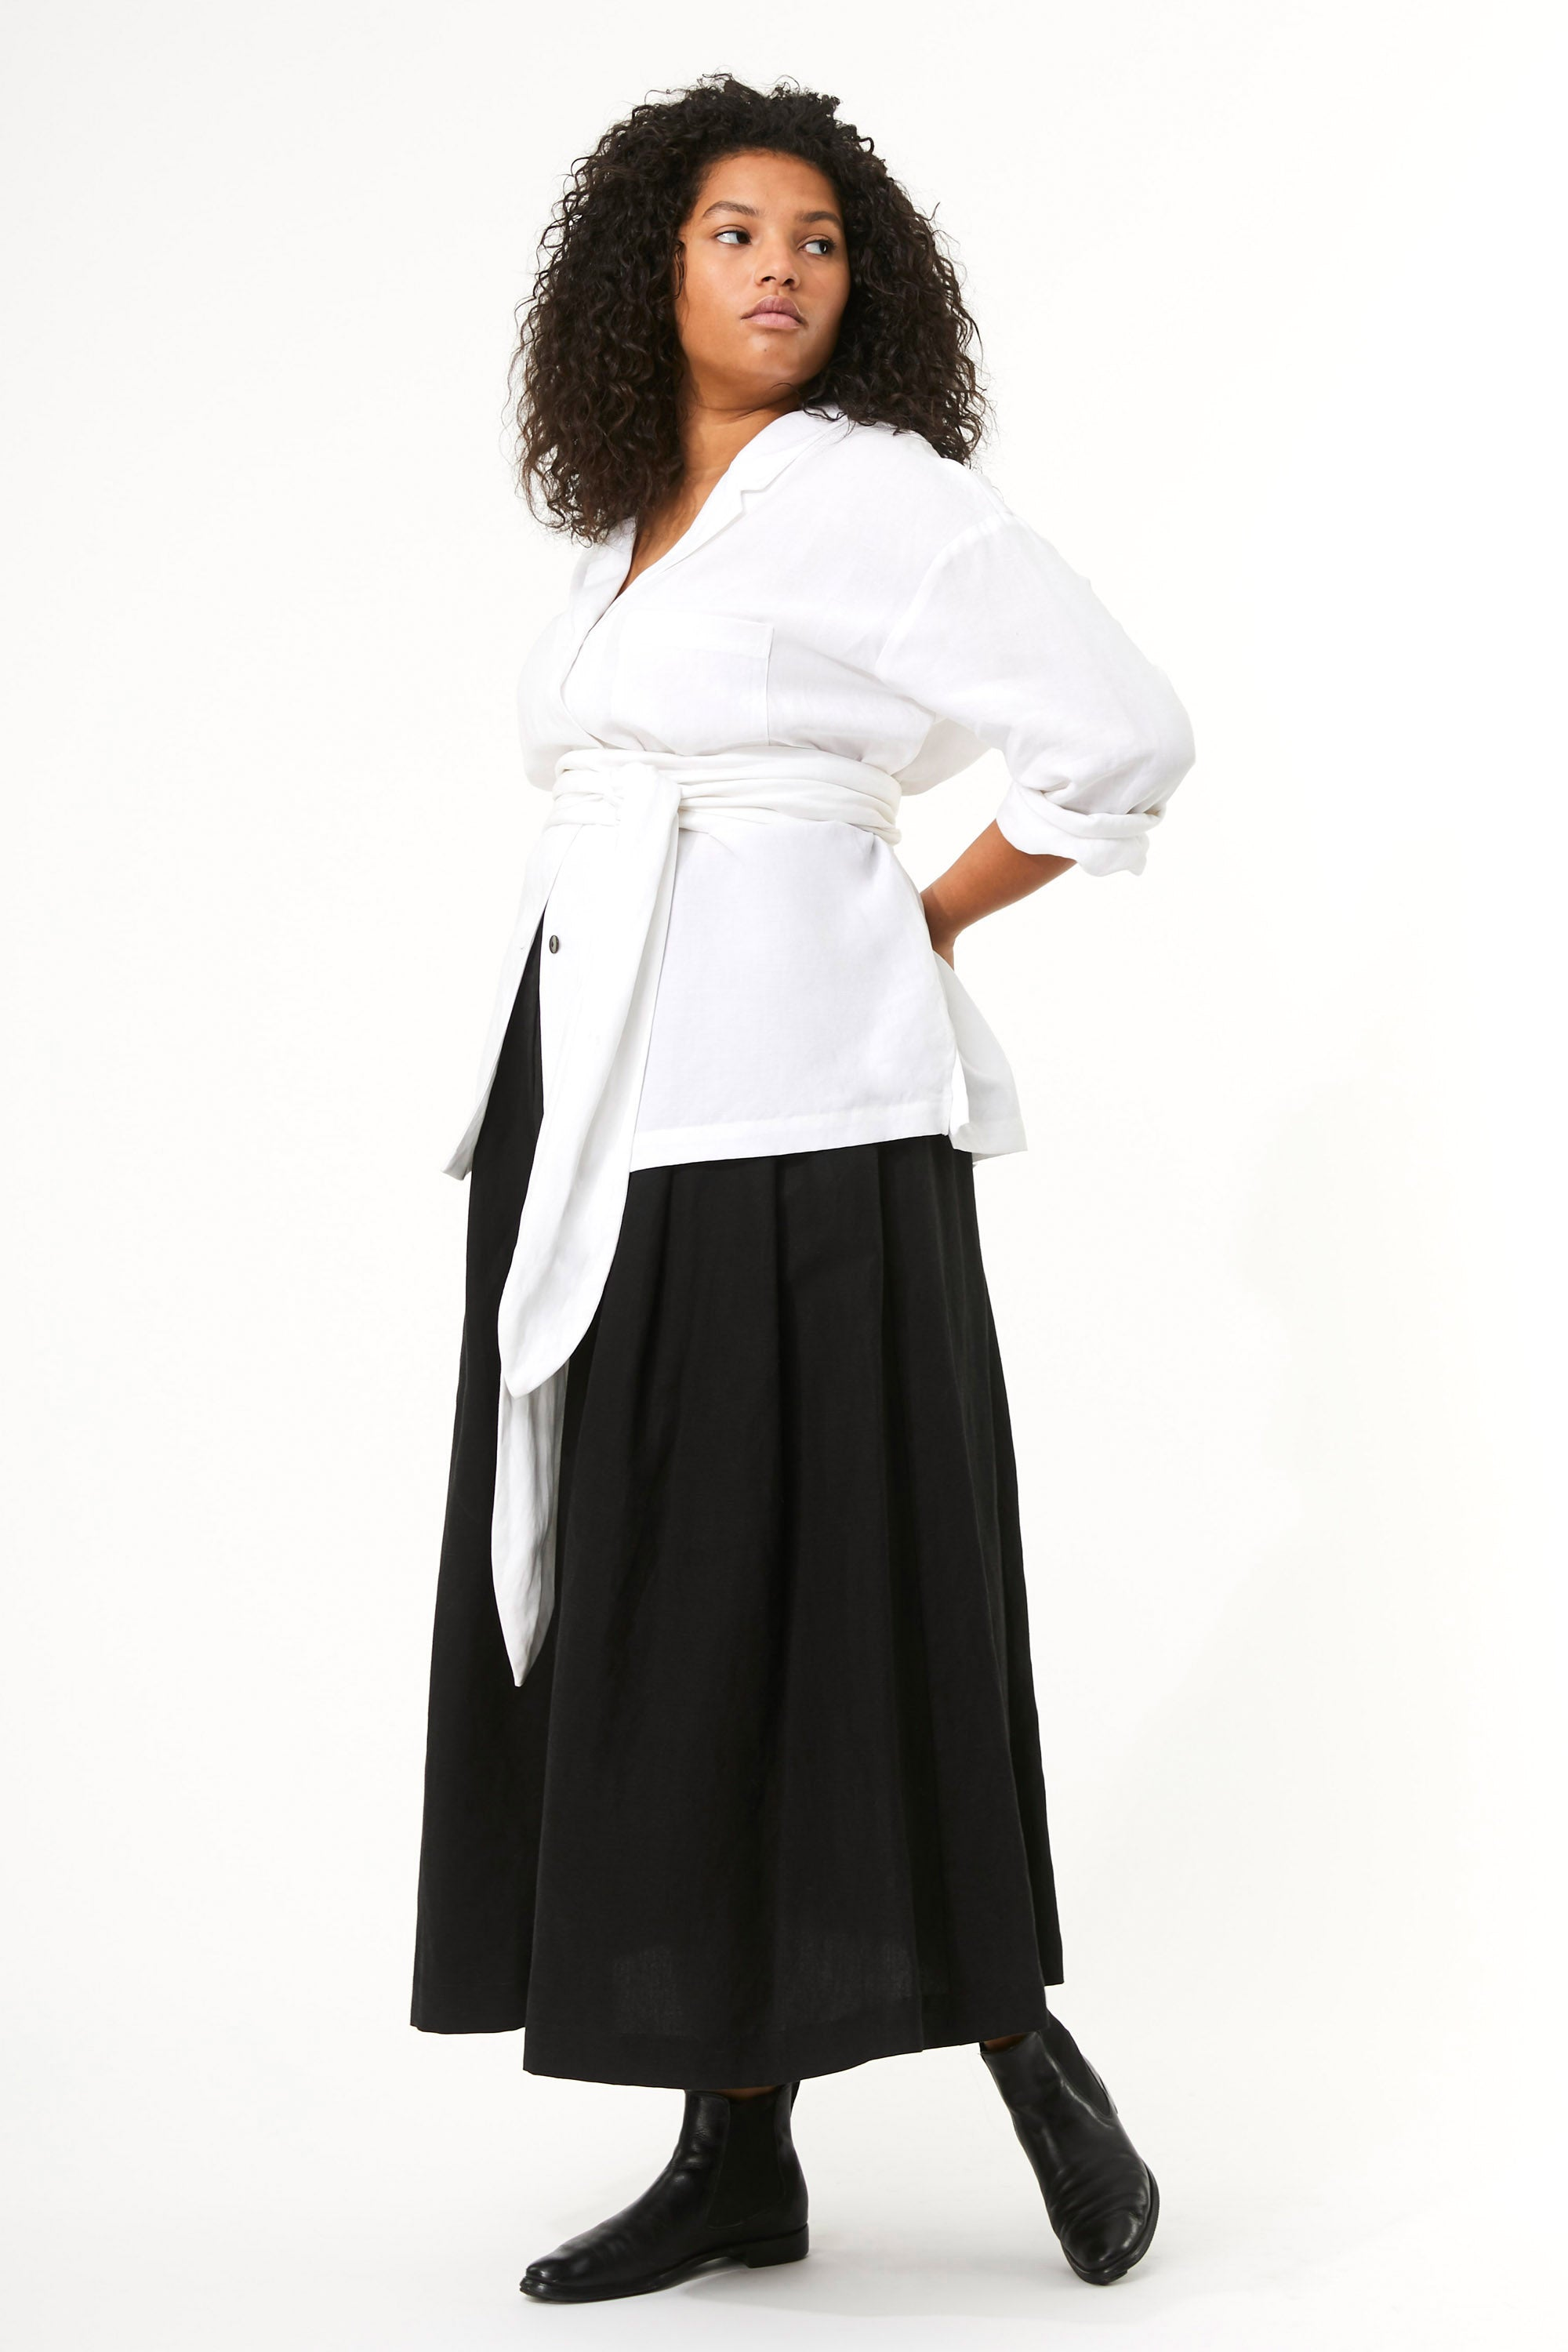 Mara Hoffman Extended White Eleanor Top in Tencel Lyocell and Linen (front)